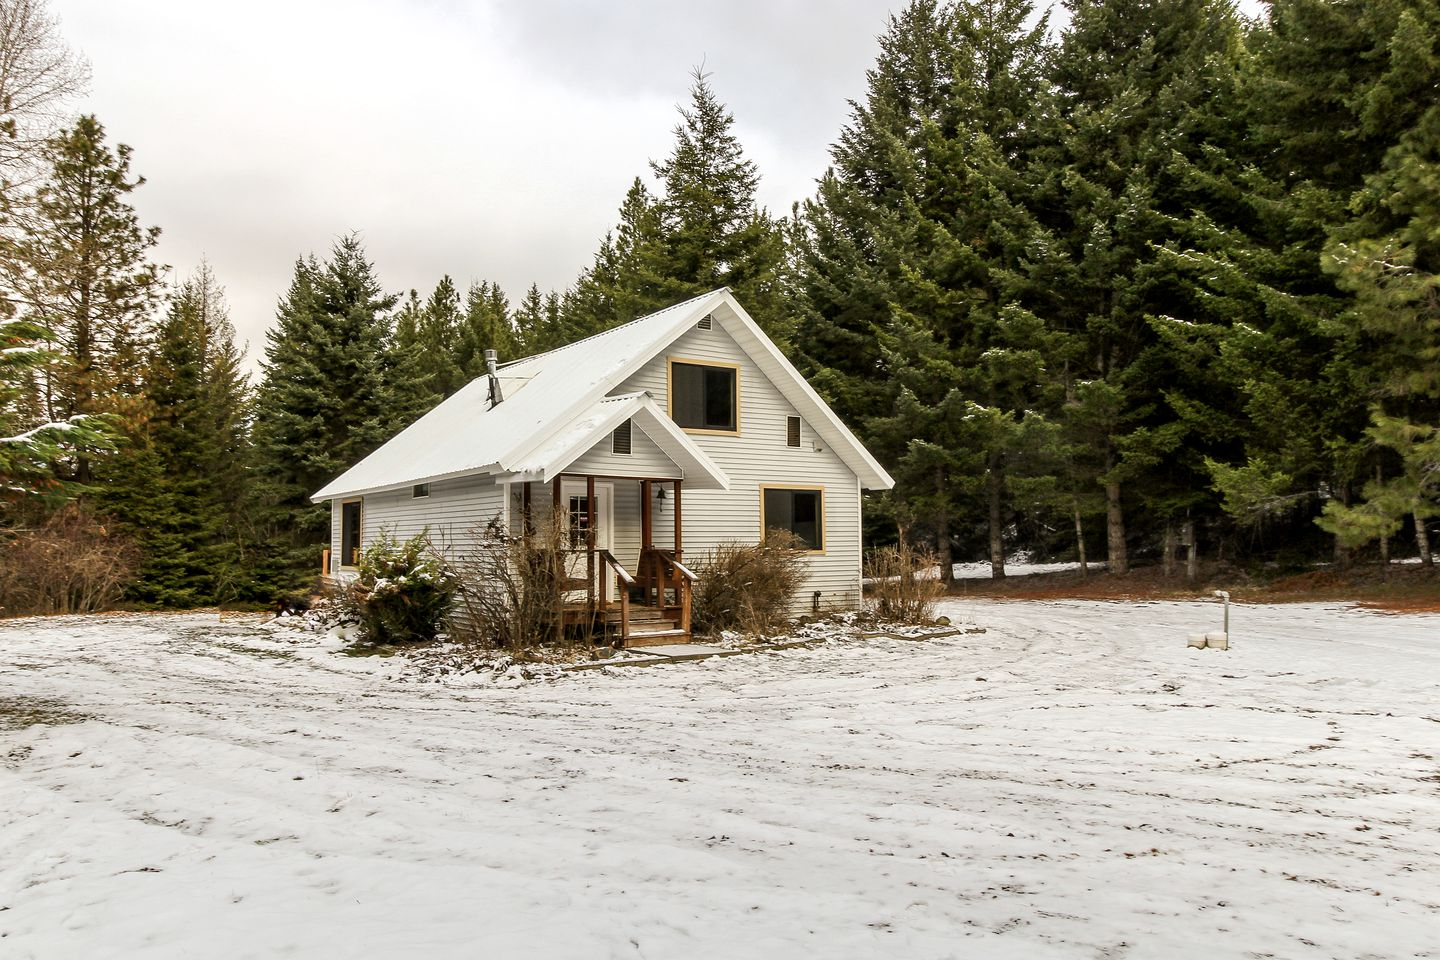 Cabins (Cle Elum, Washington, United States)